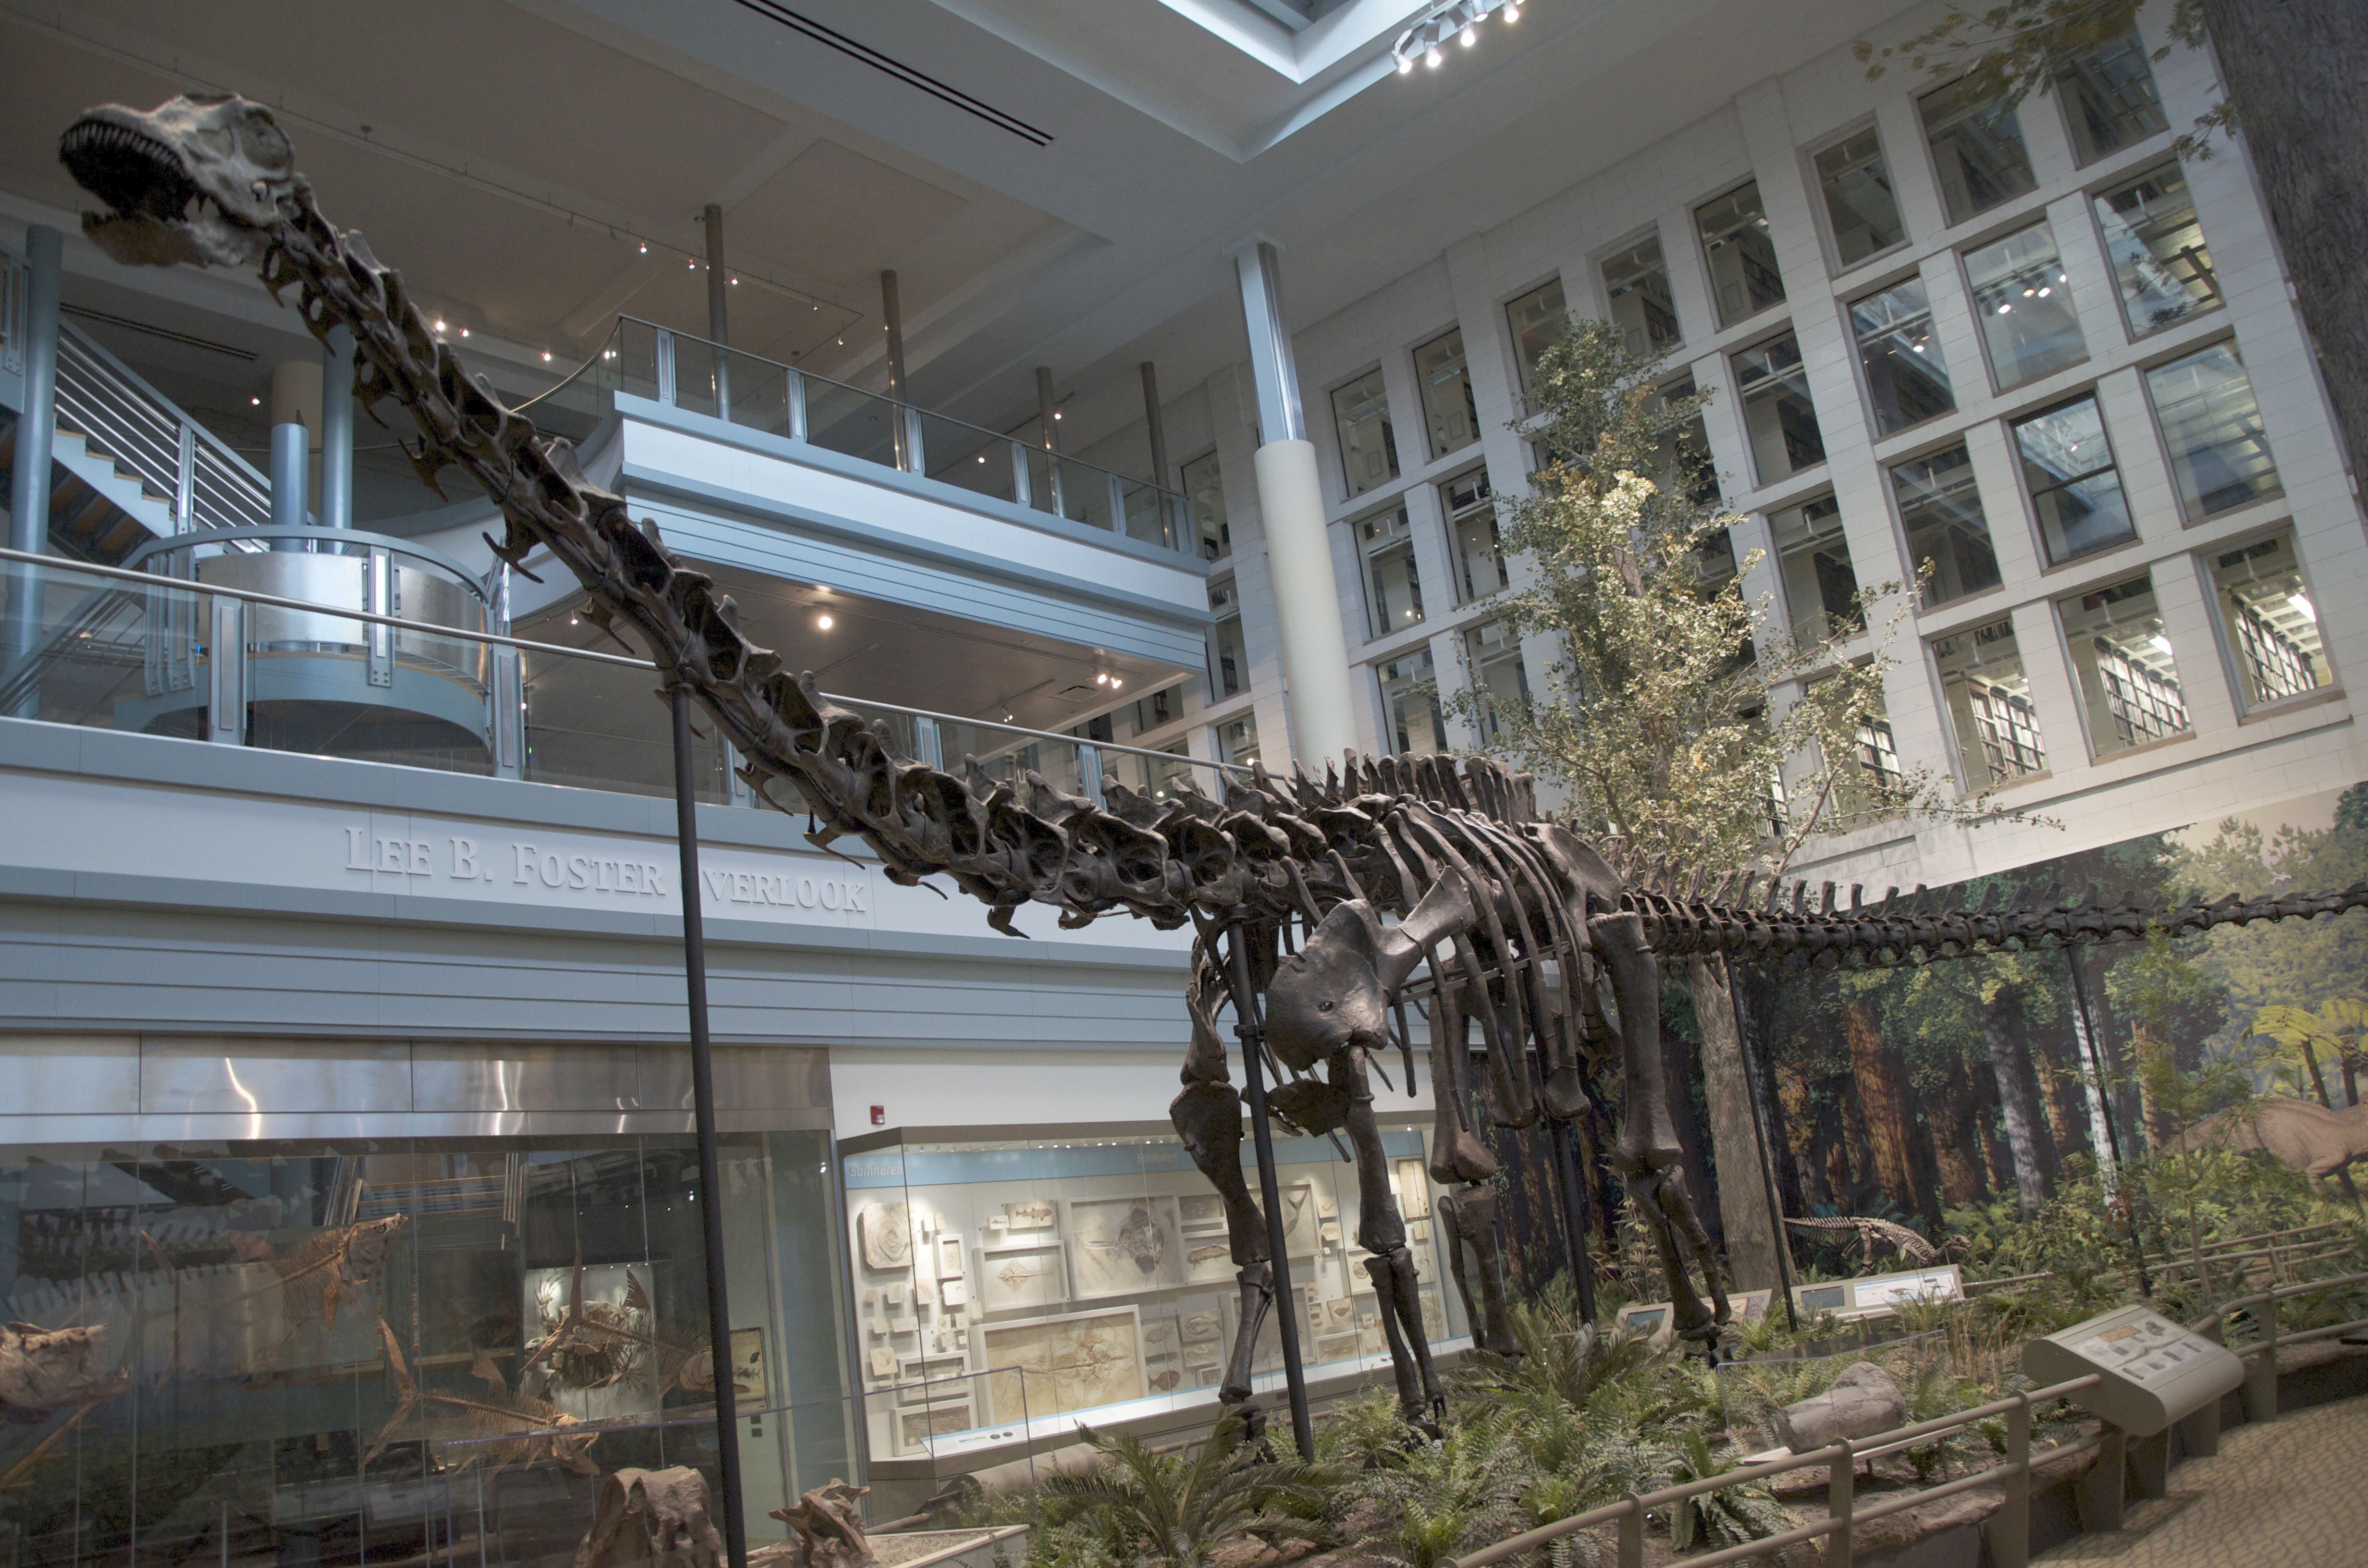 can radiation dating be used to determine the age of dinosaur fossils